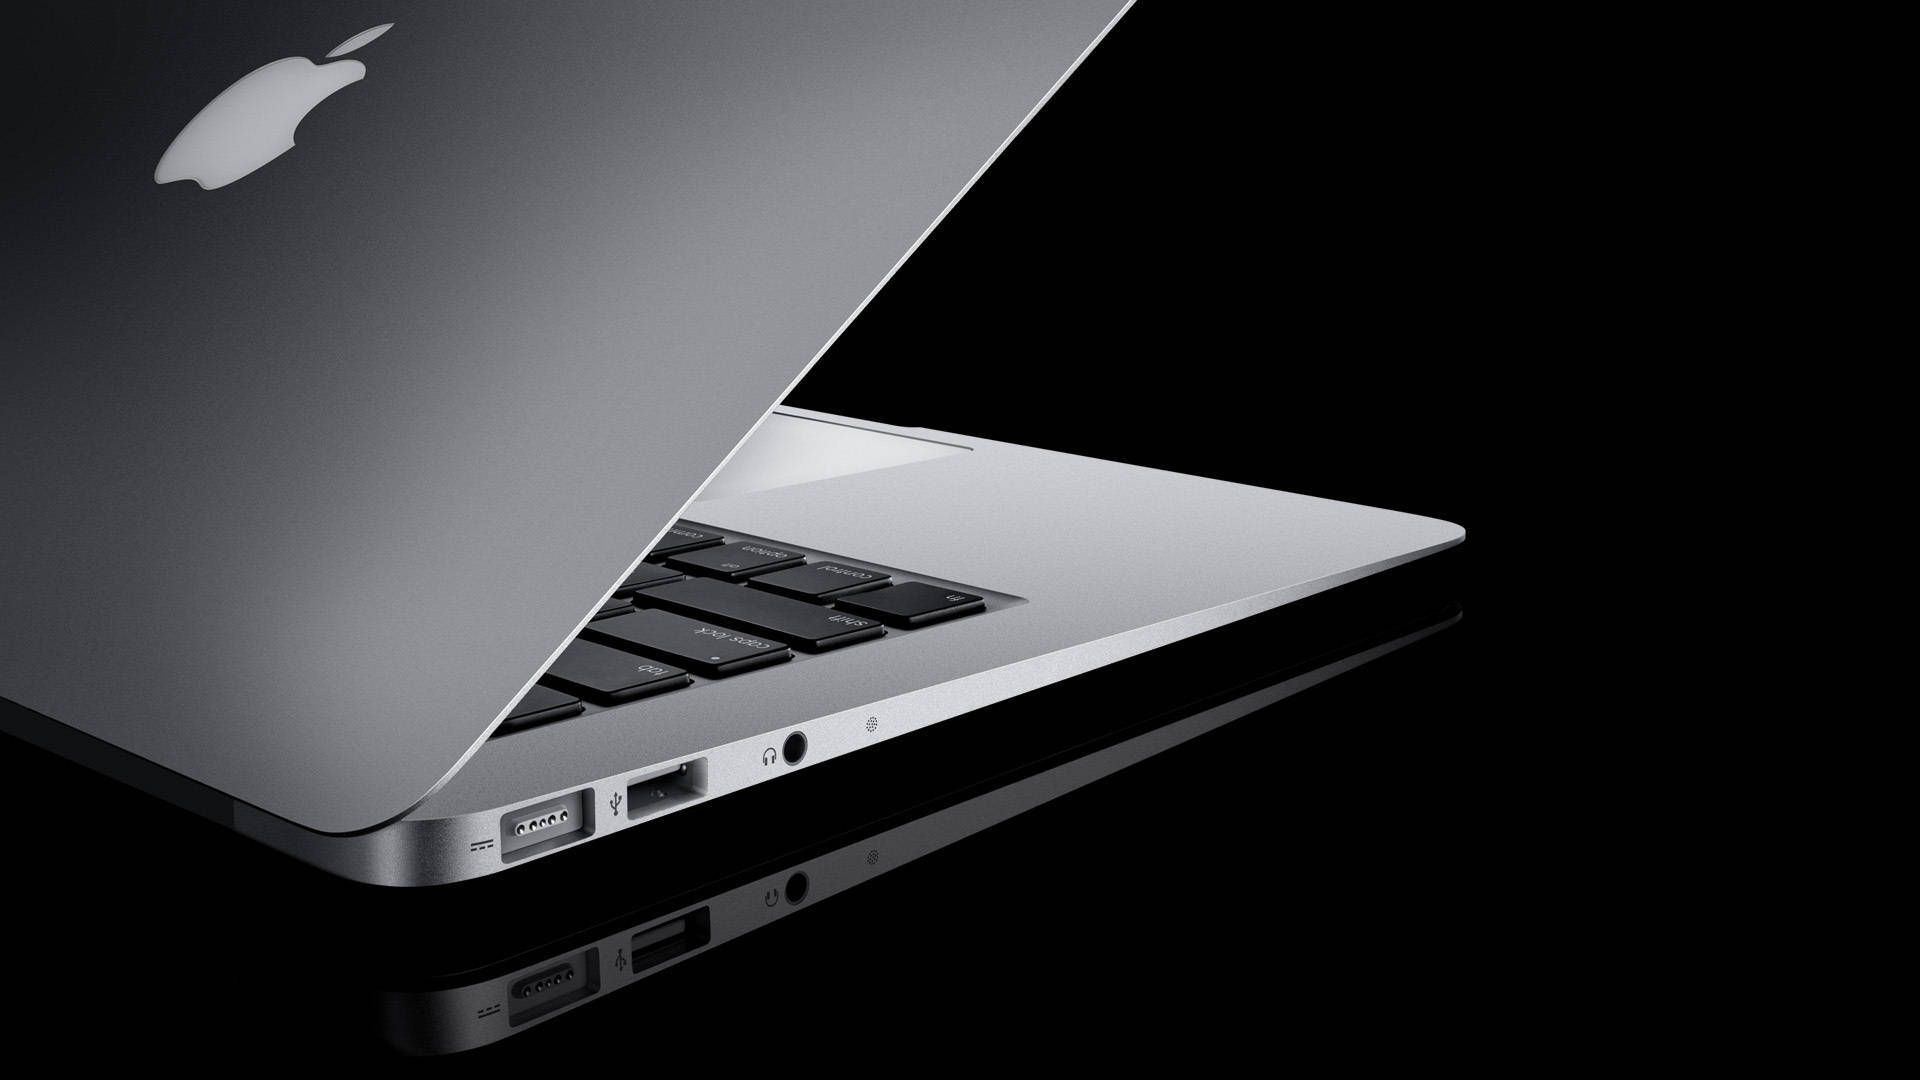 Wallpaper For Macbook Air TianyihengfengFree Download High